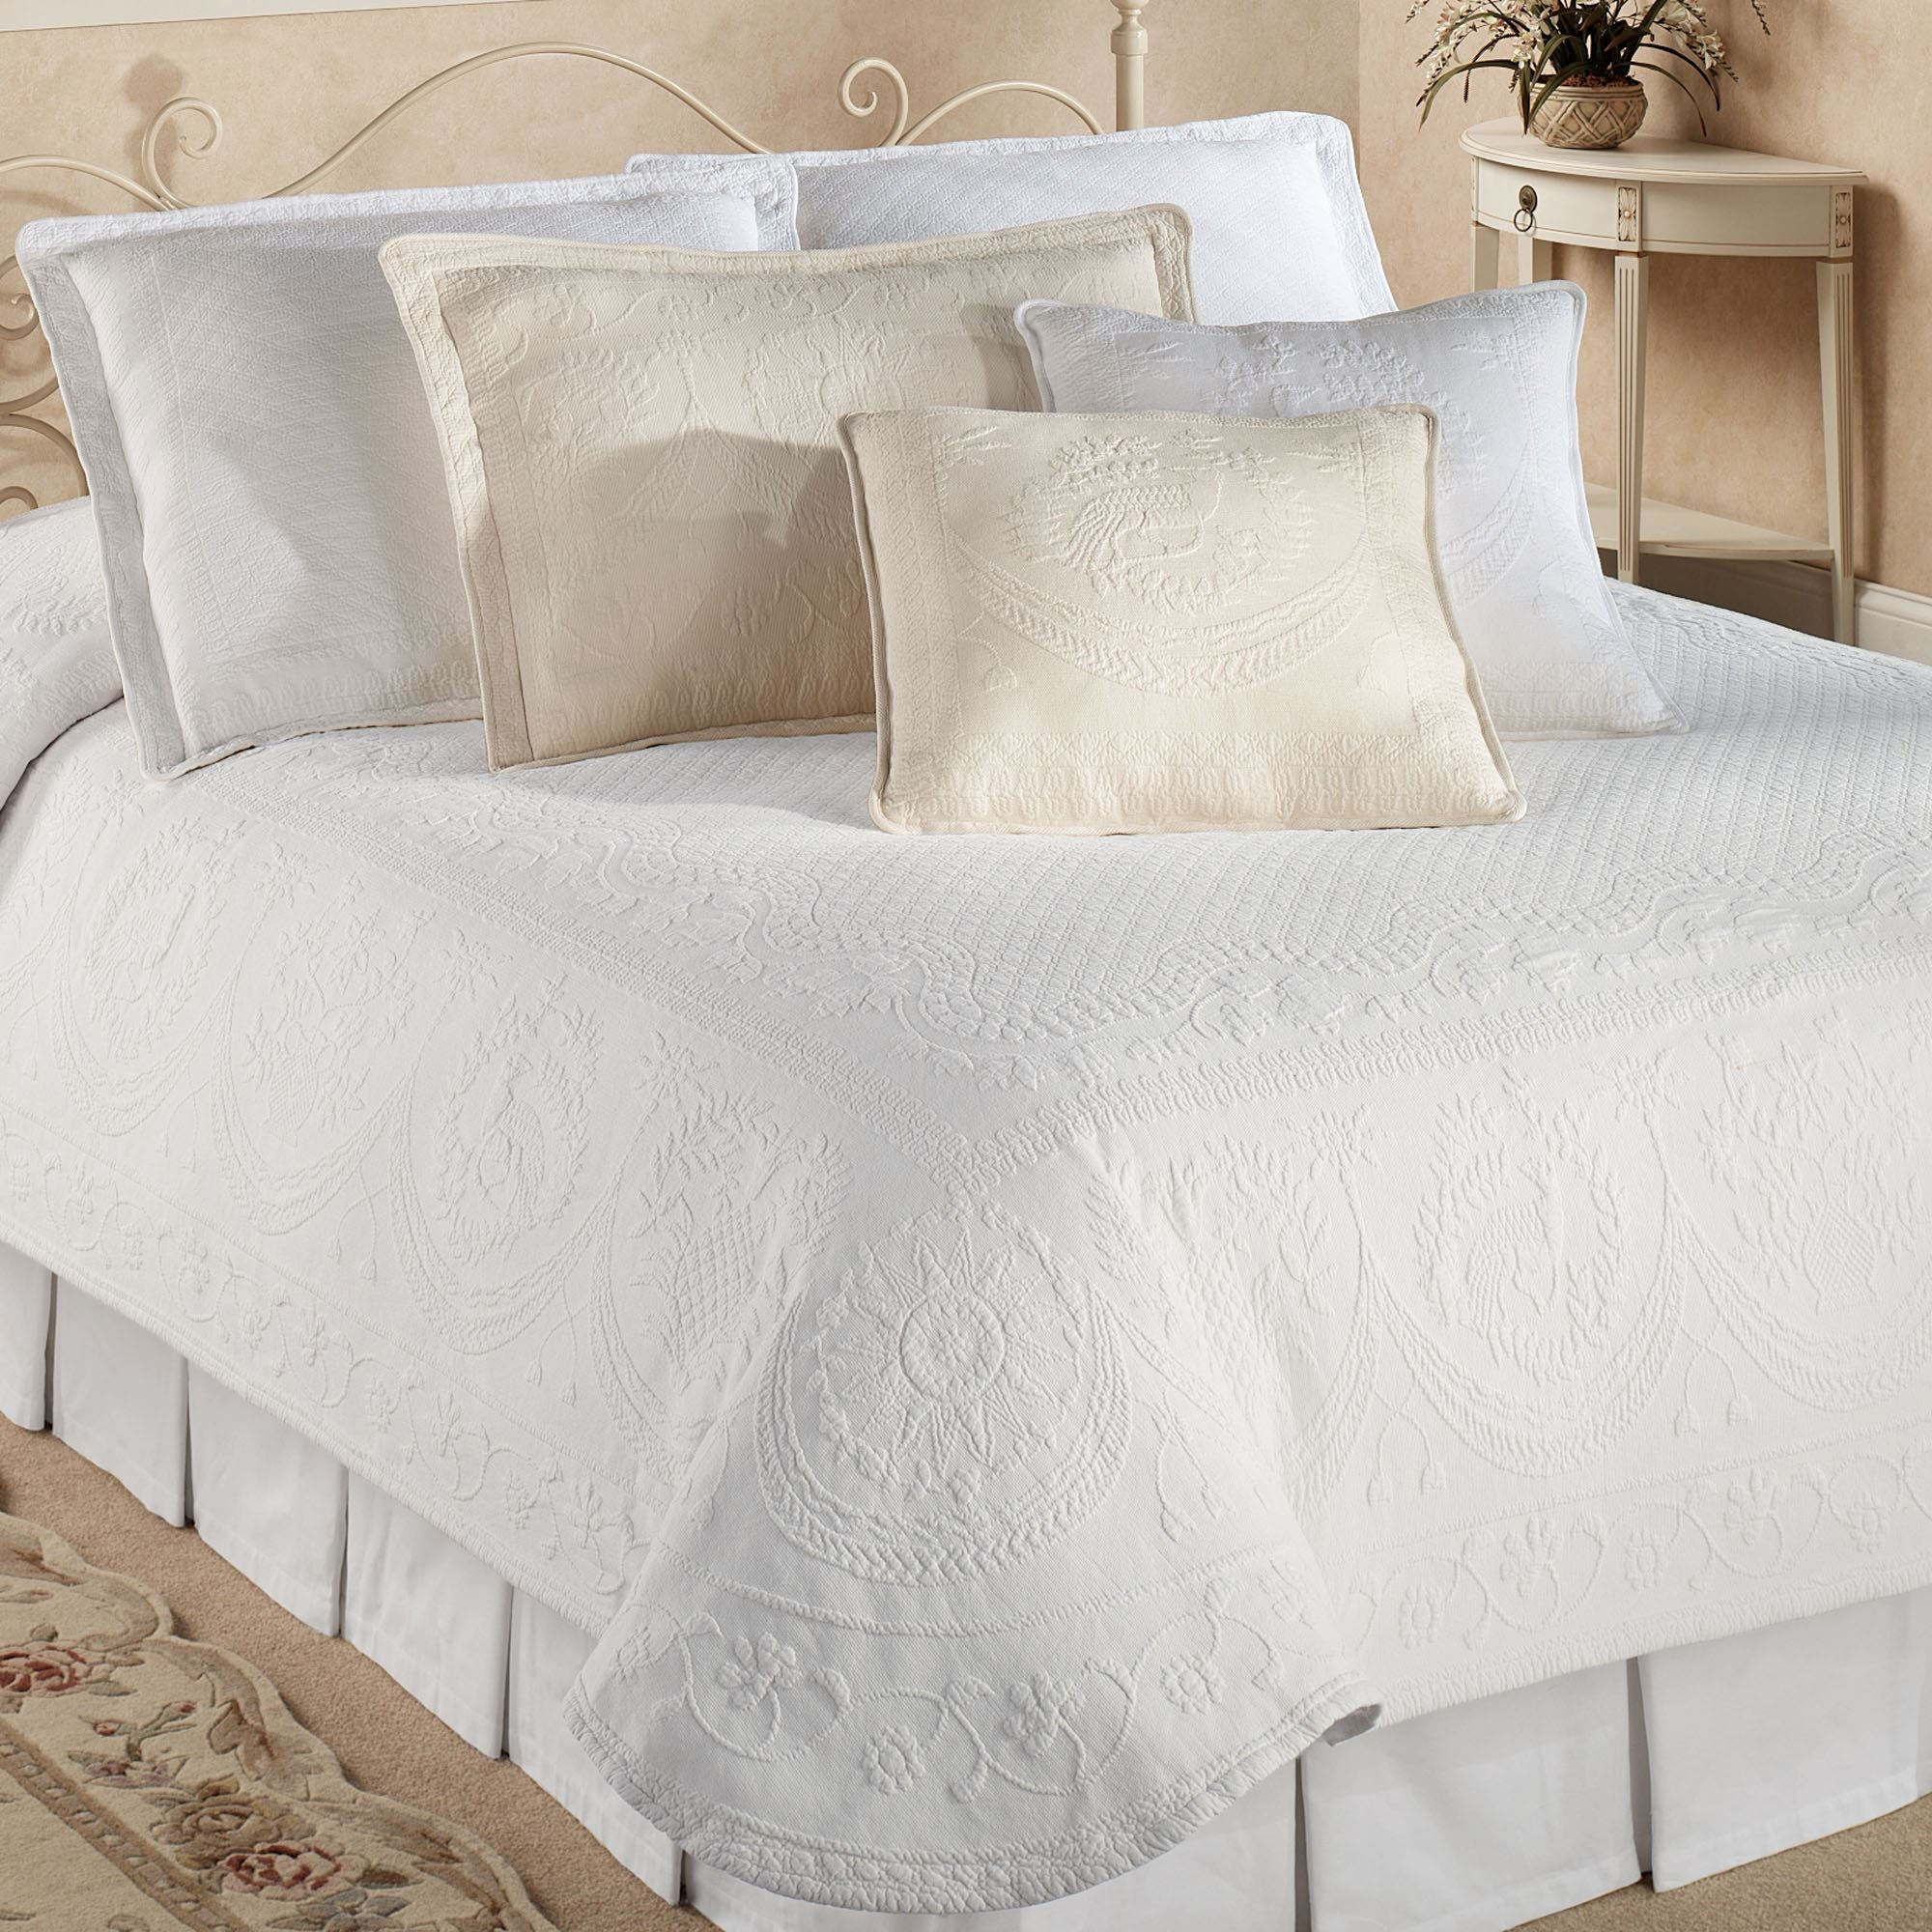 Is Matelasse Coverlet Comfortable Coverlet Bedding Bed Bed Spreads